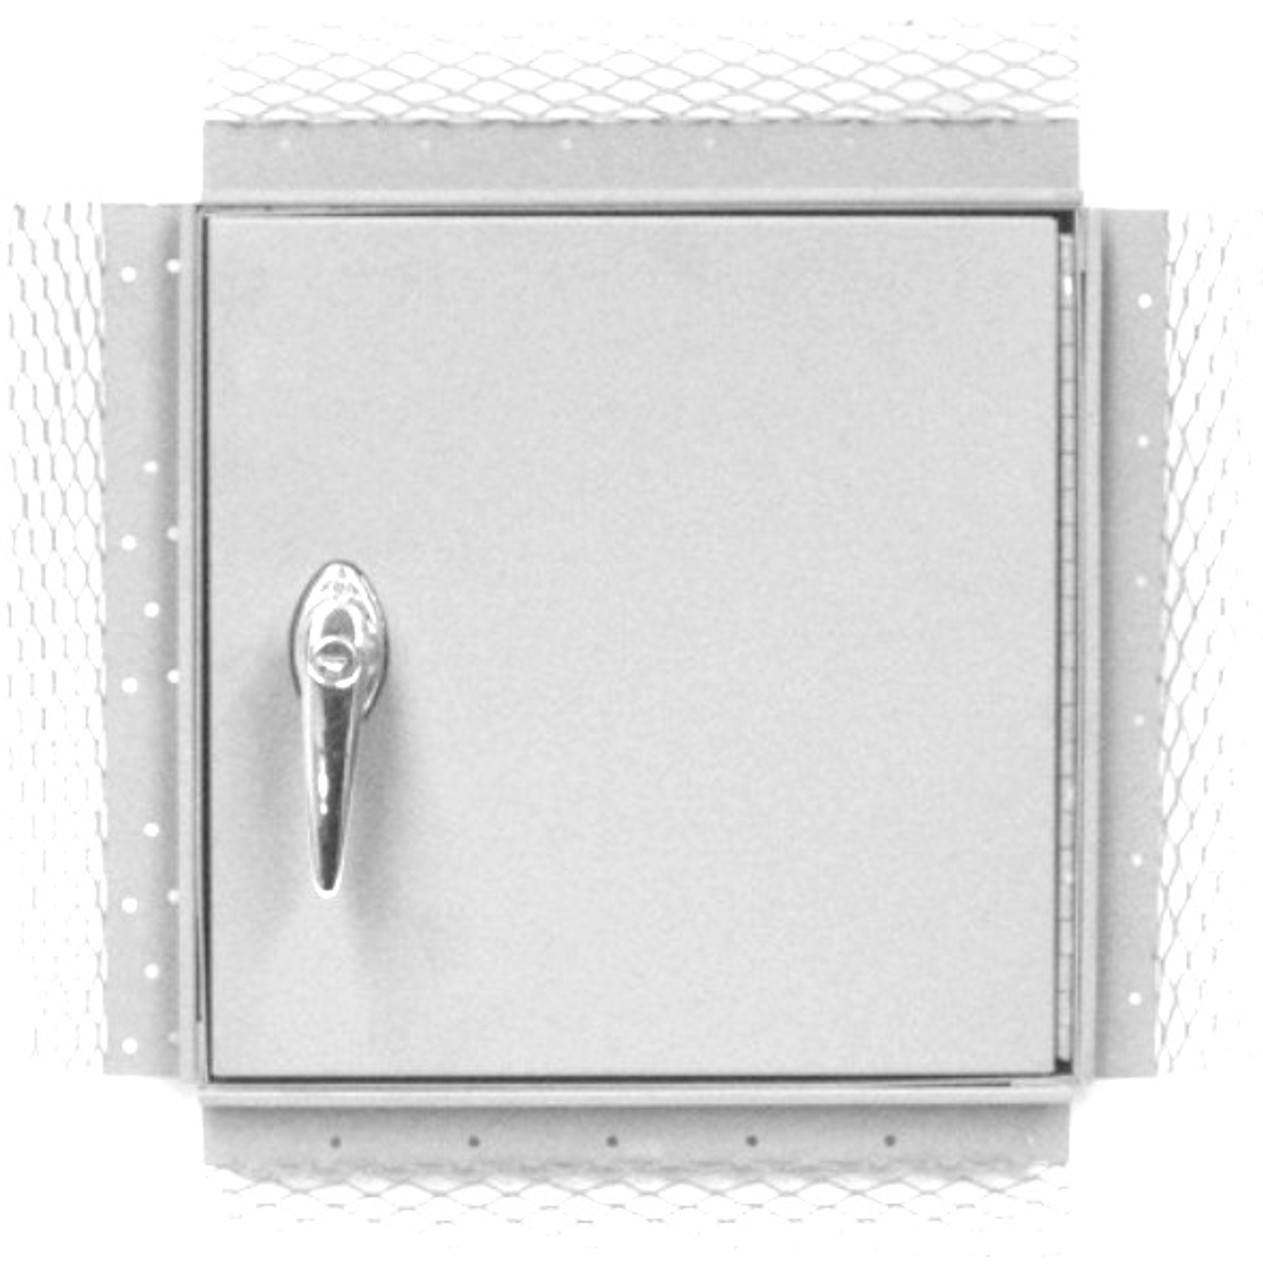 30in x 36in, JL Industries, XPA-PWE-Series Access Panel